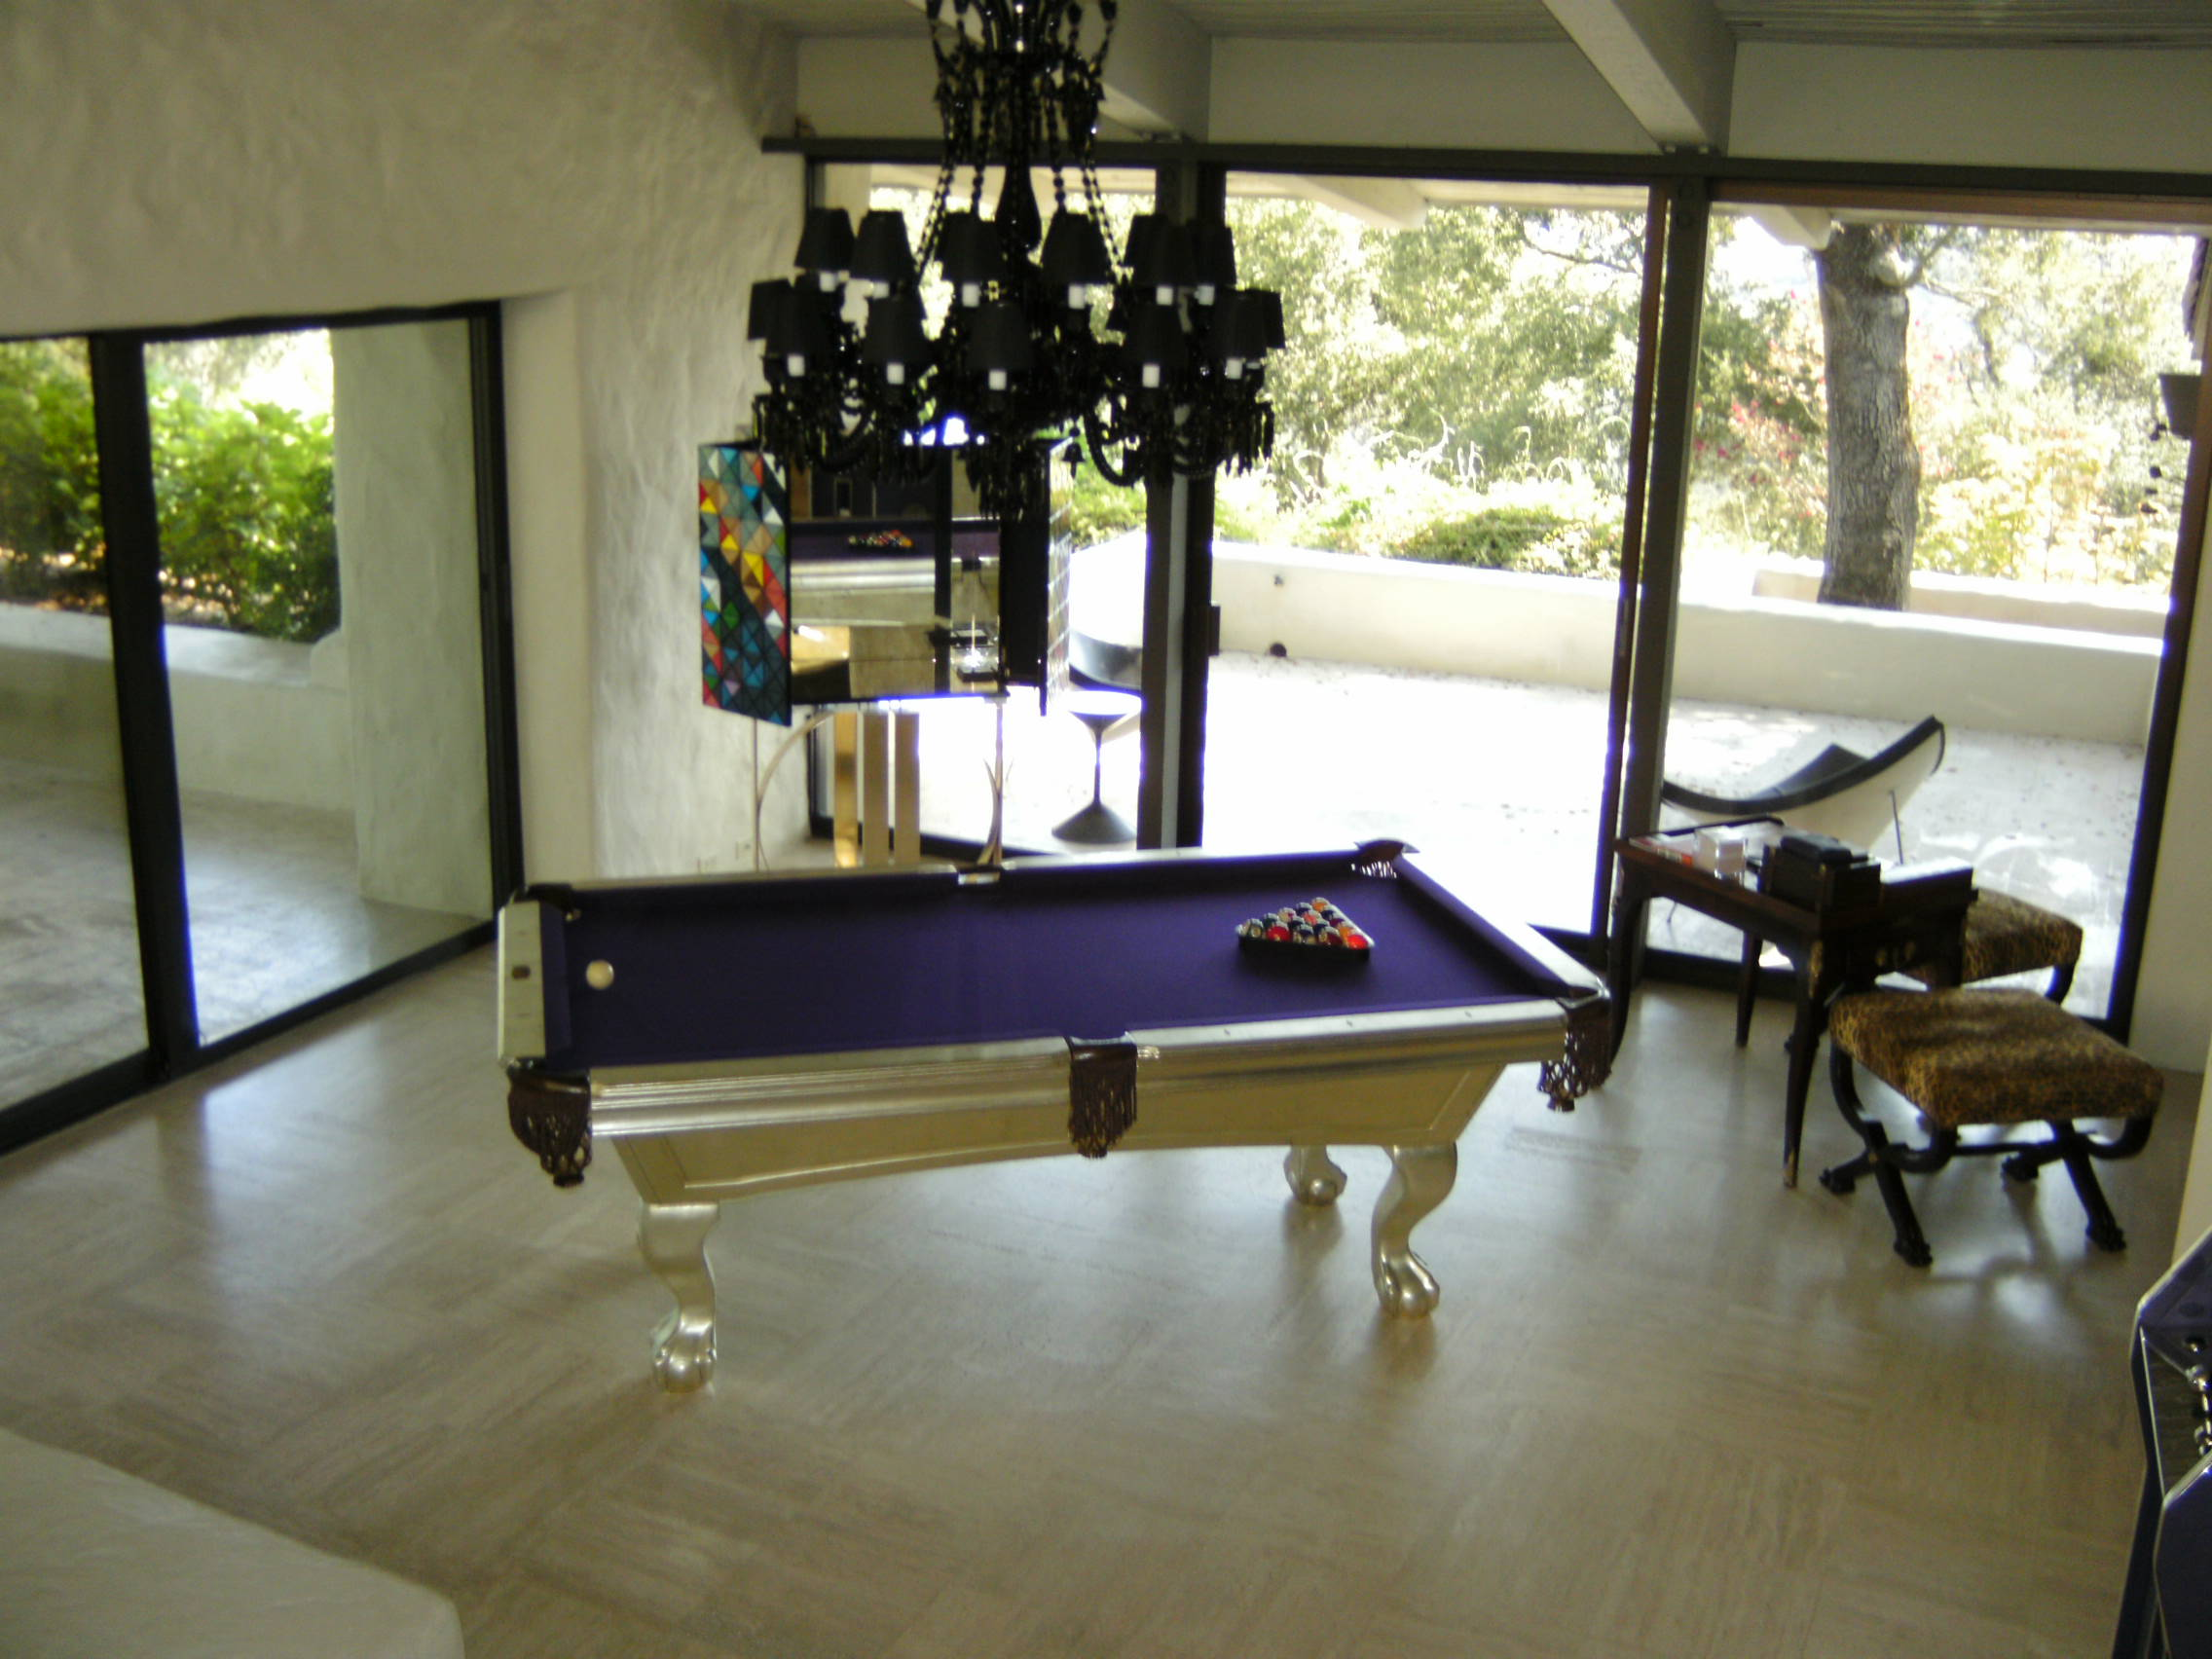 White Gold Pool Table Snooker Table